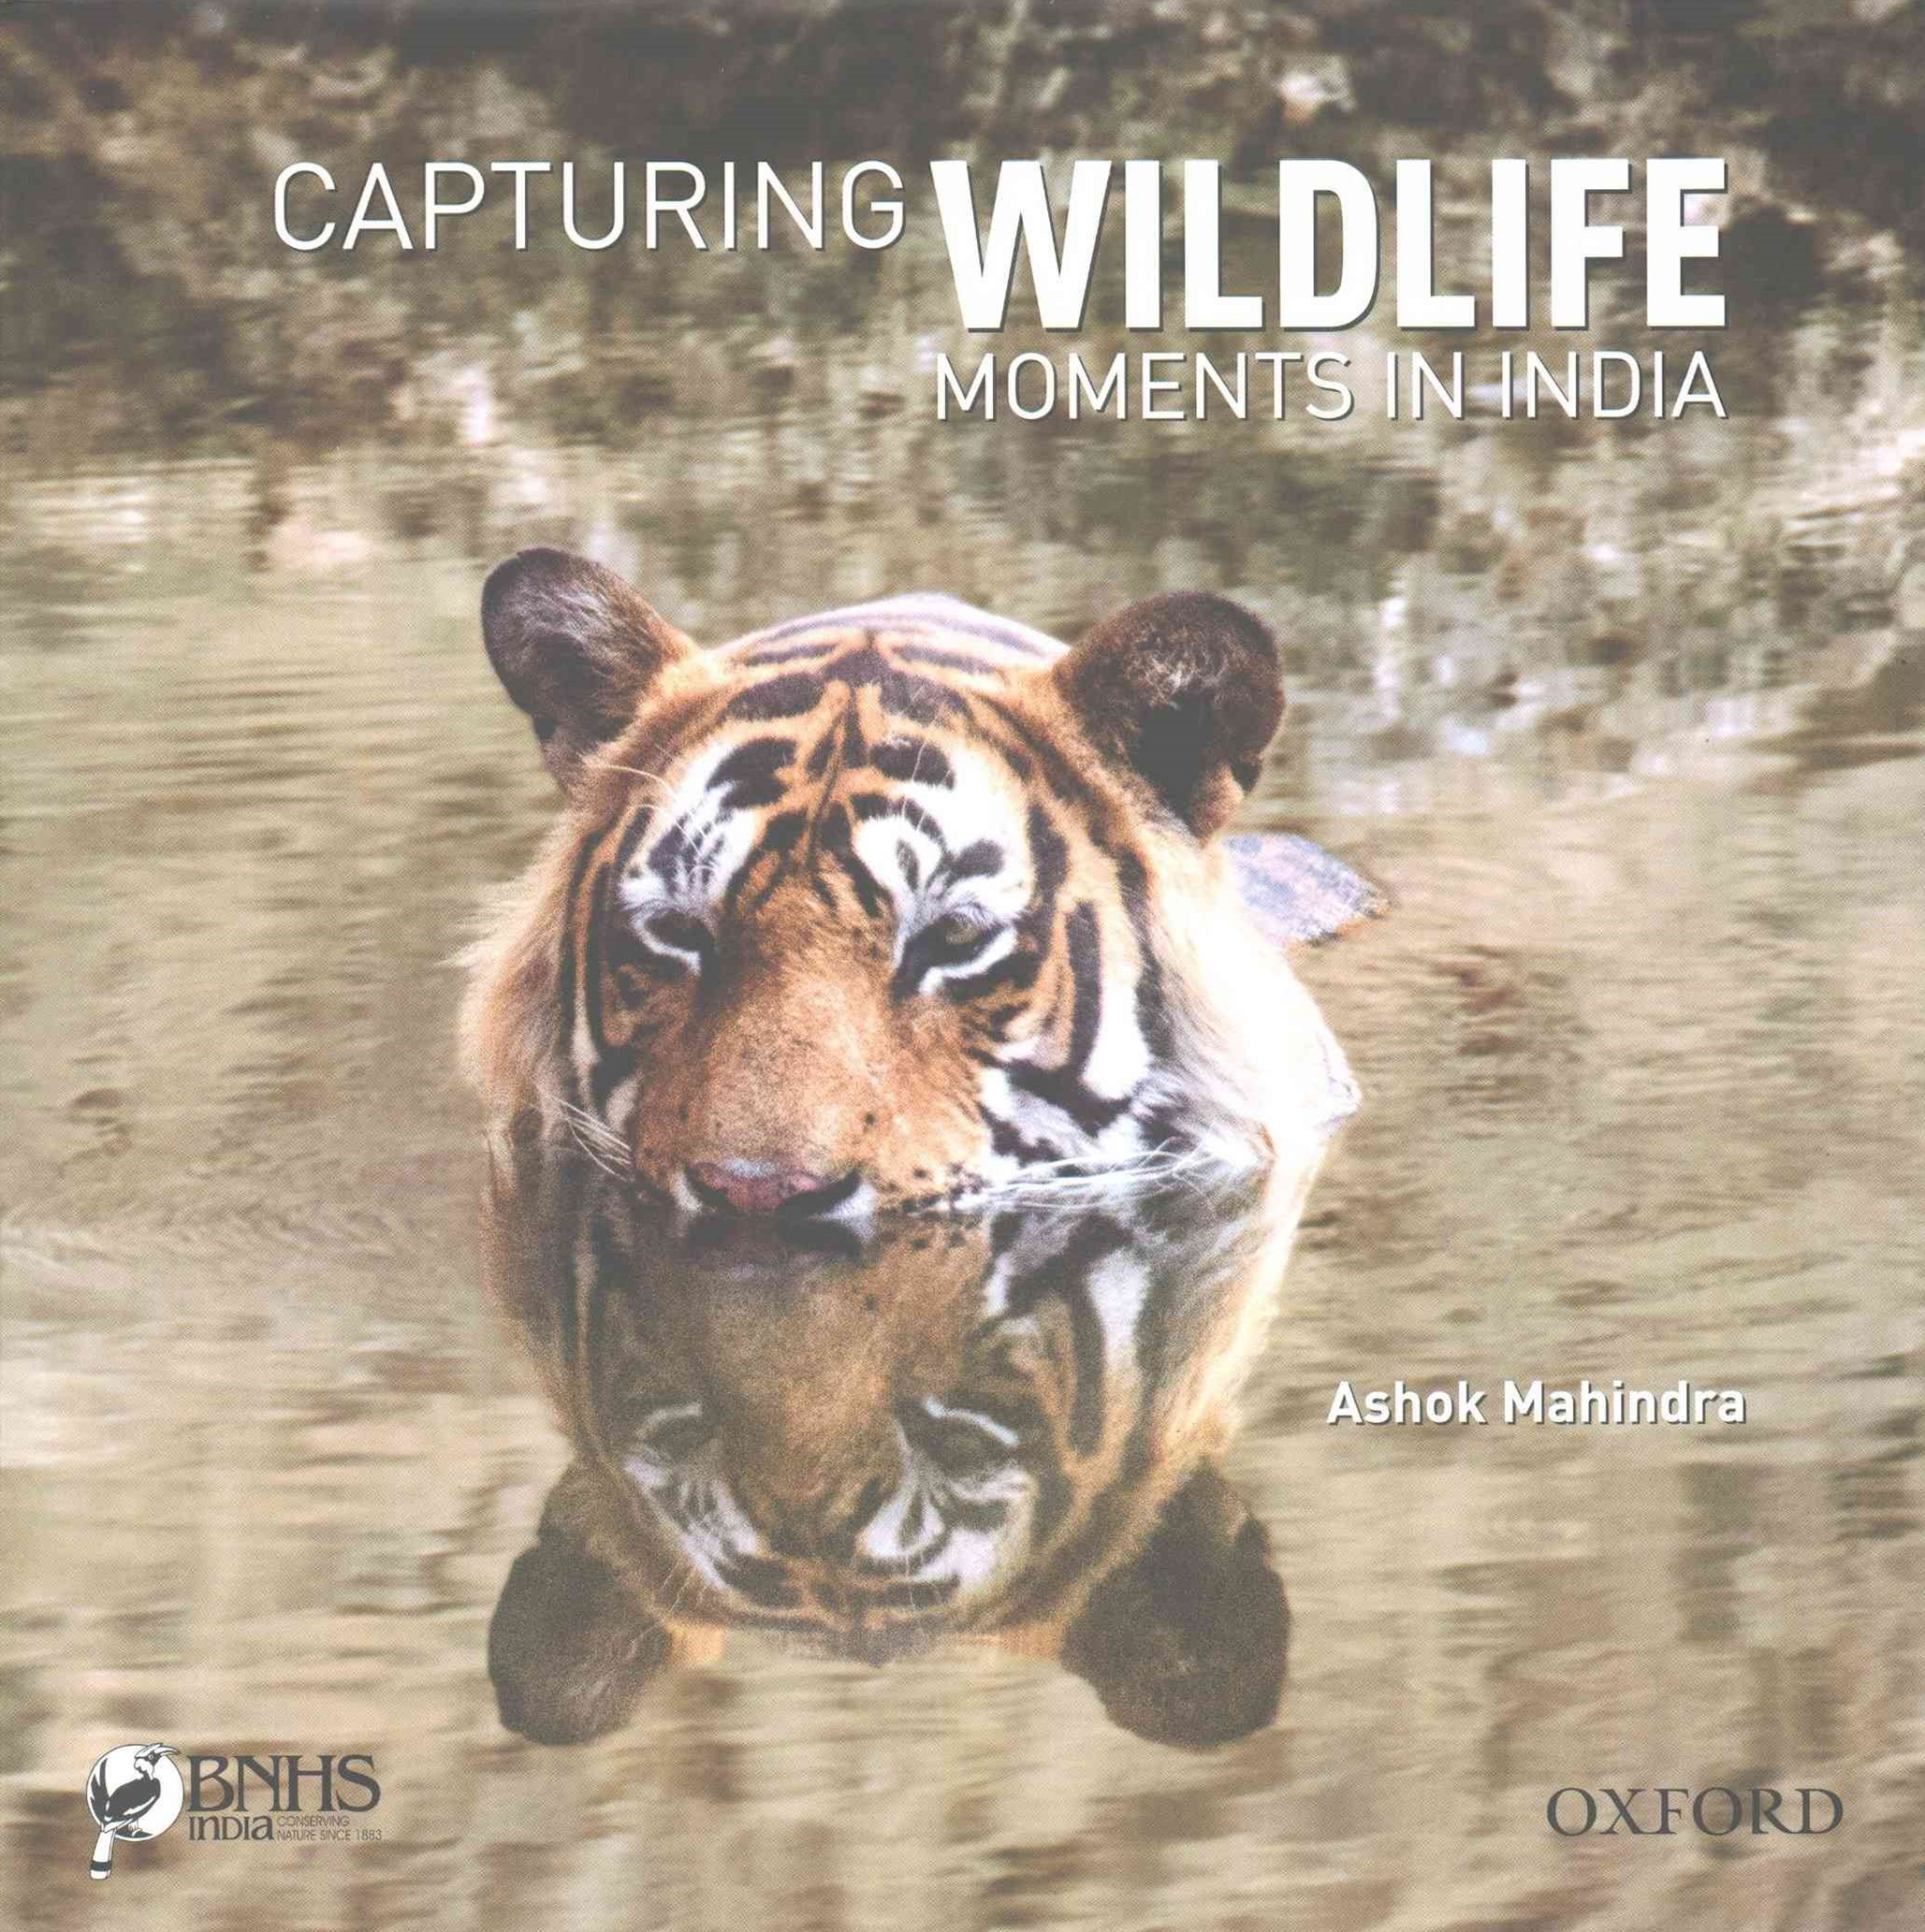 Capturing Wildlife Moments in India